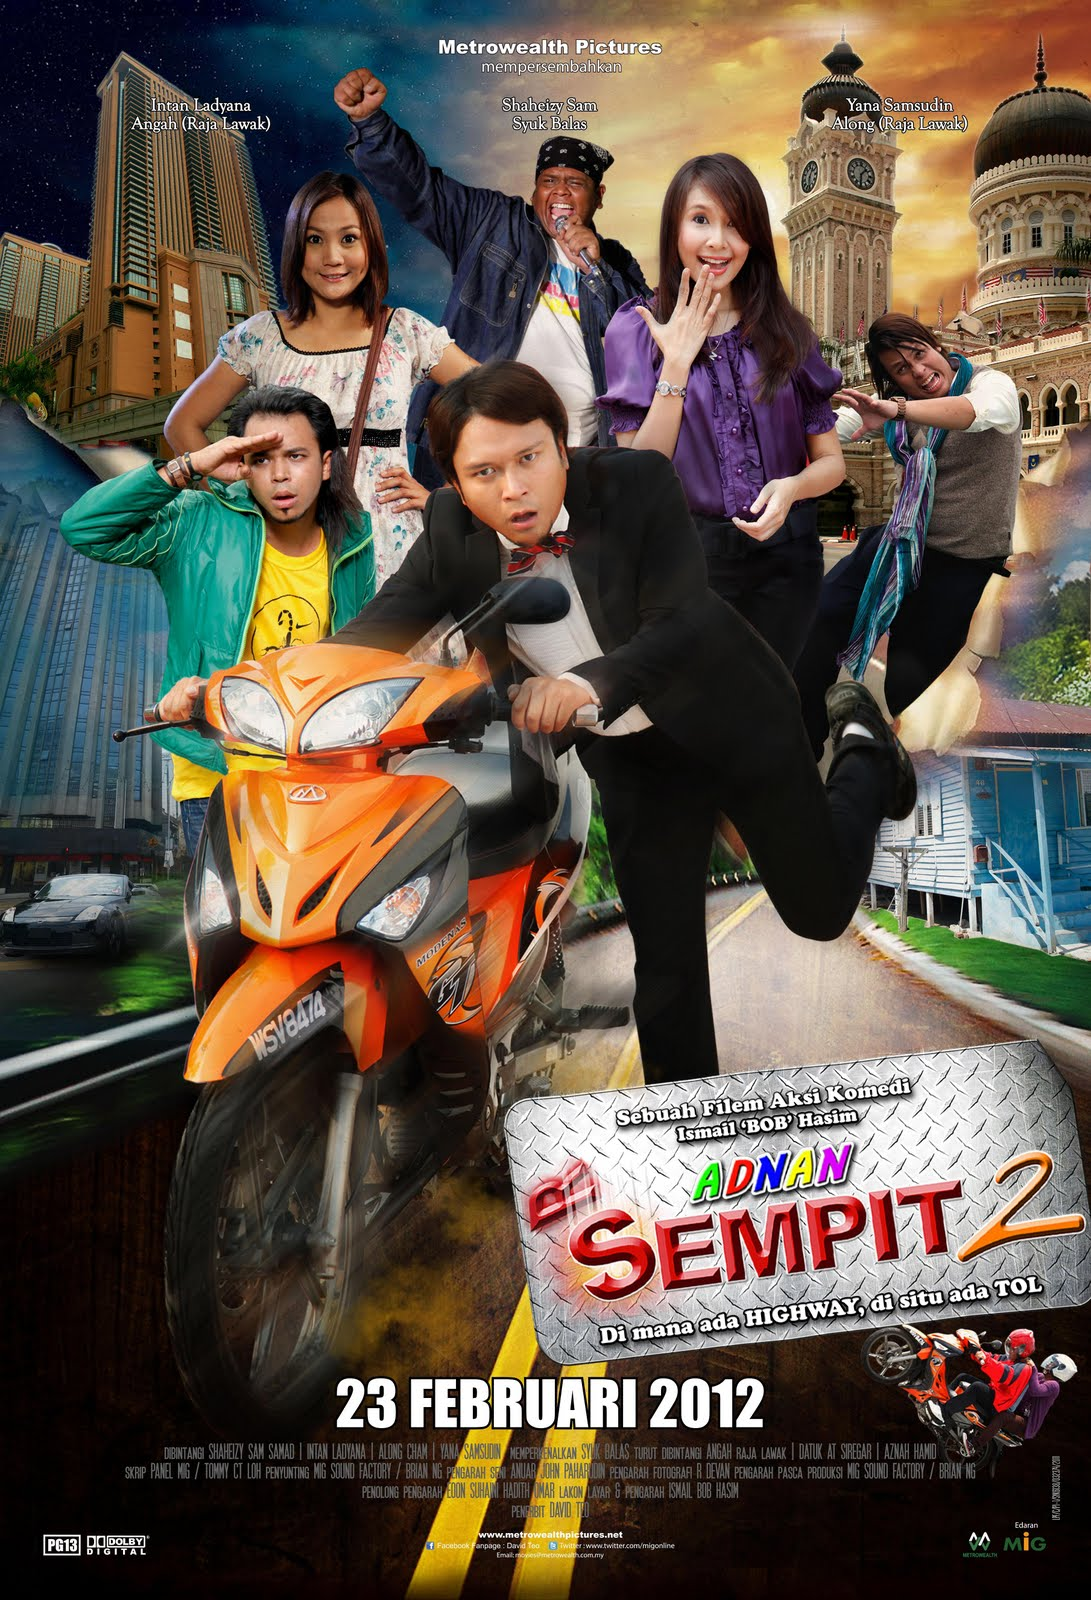 Image Result For Adnan Sempit Full Movie Youtube